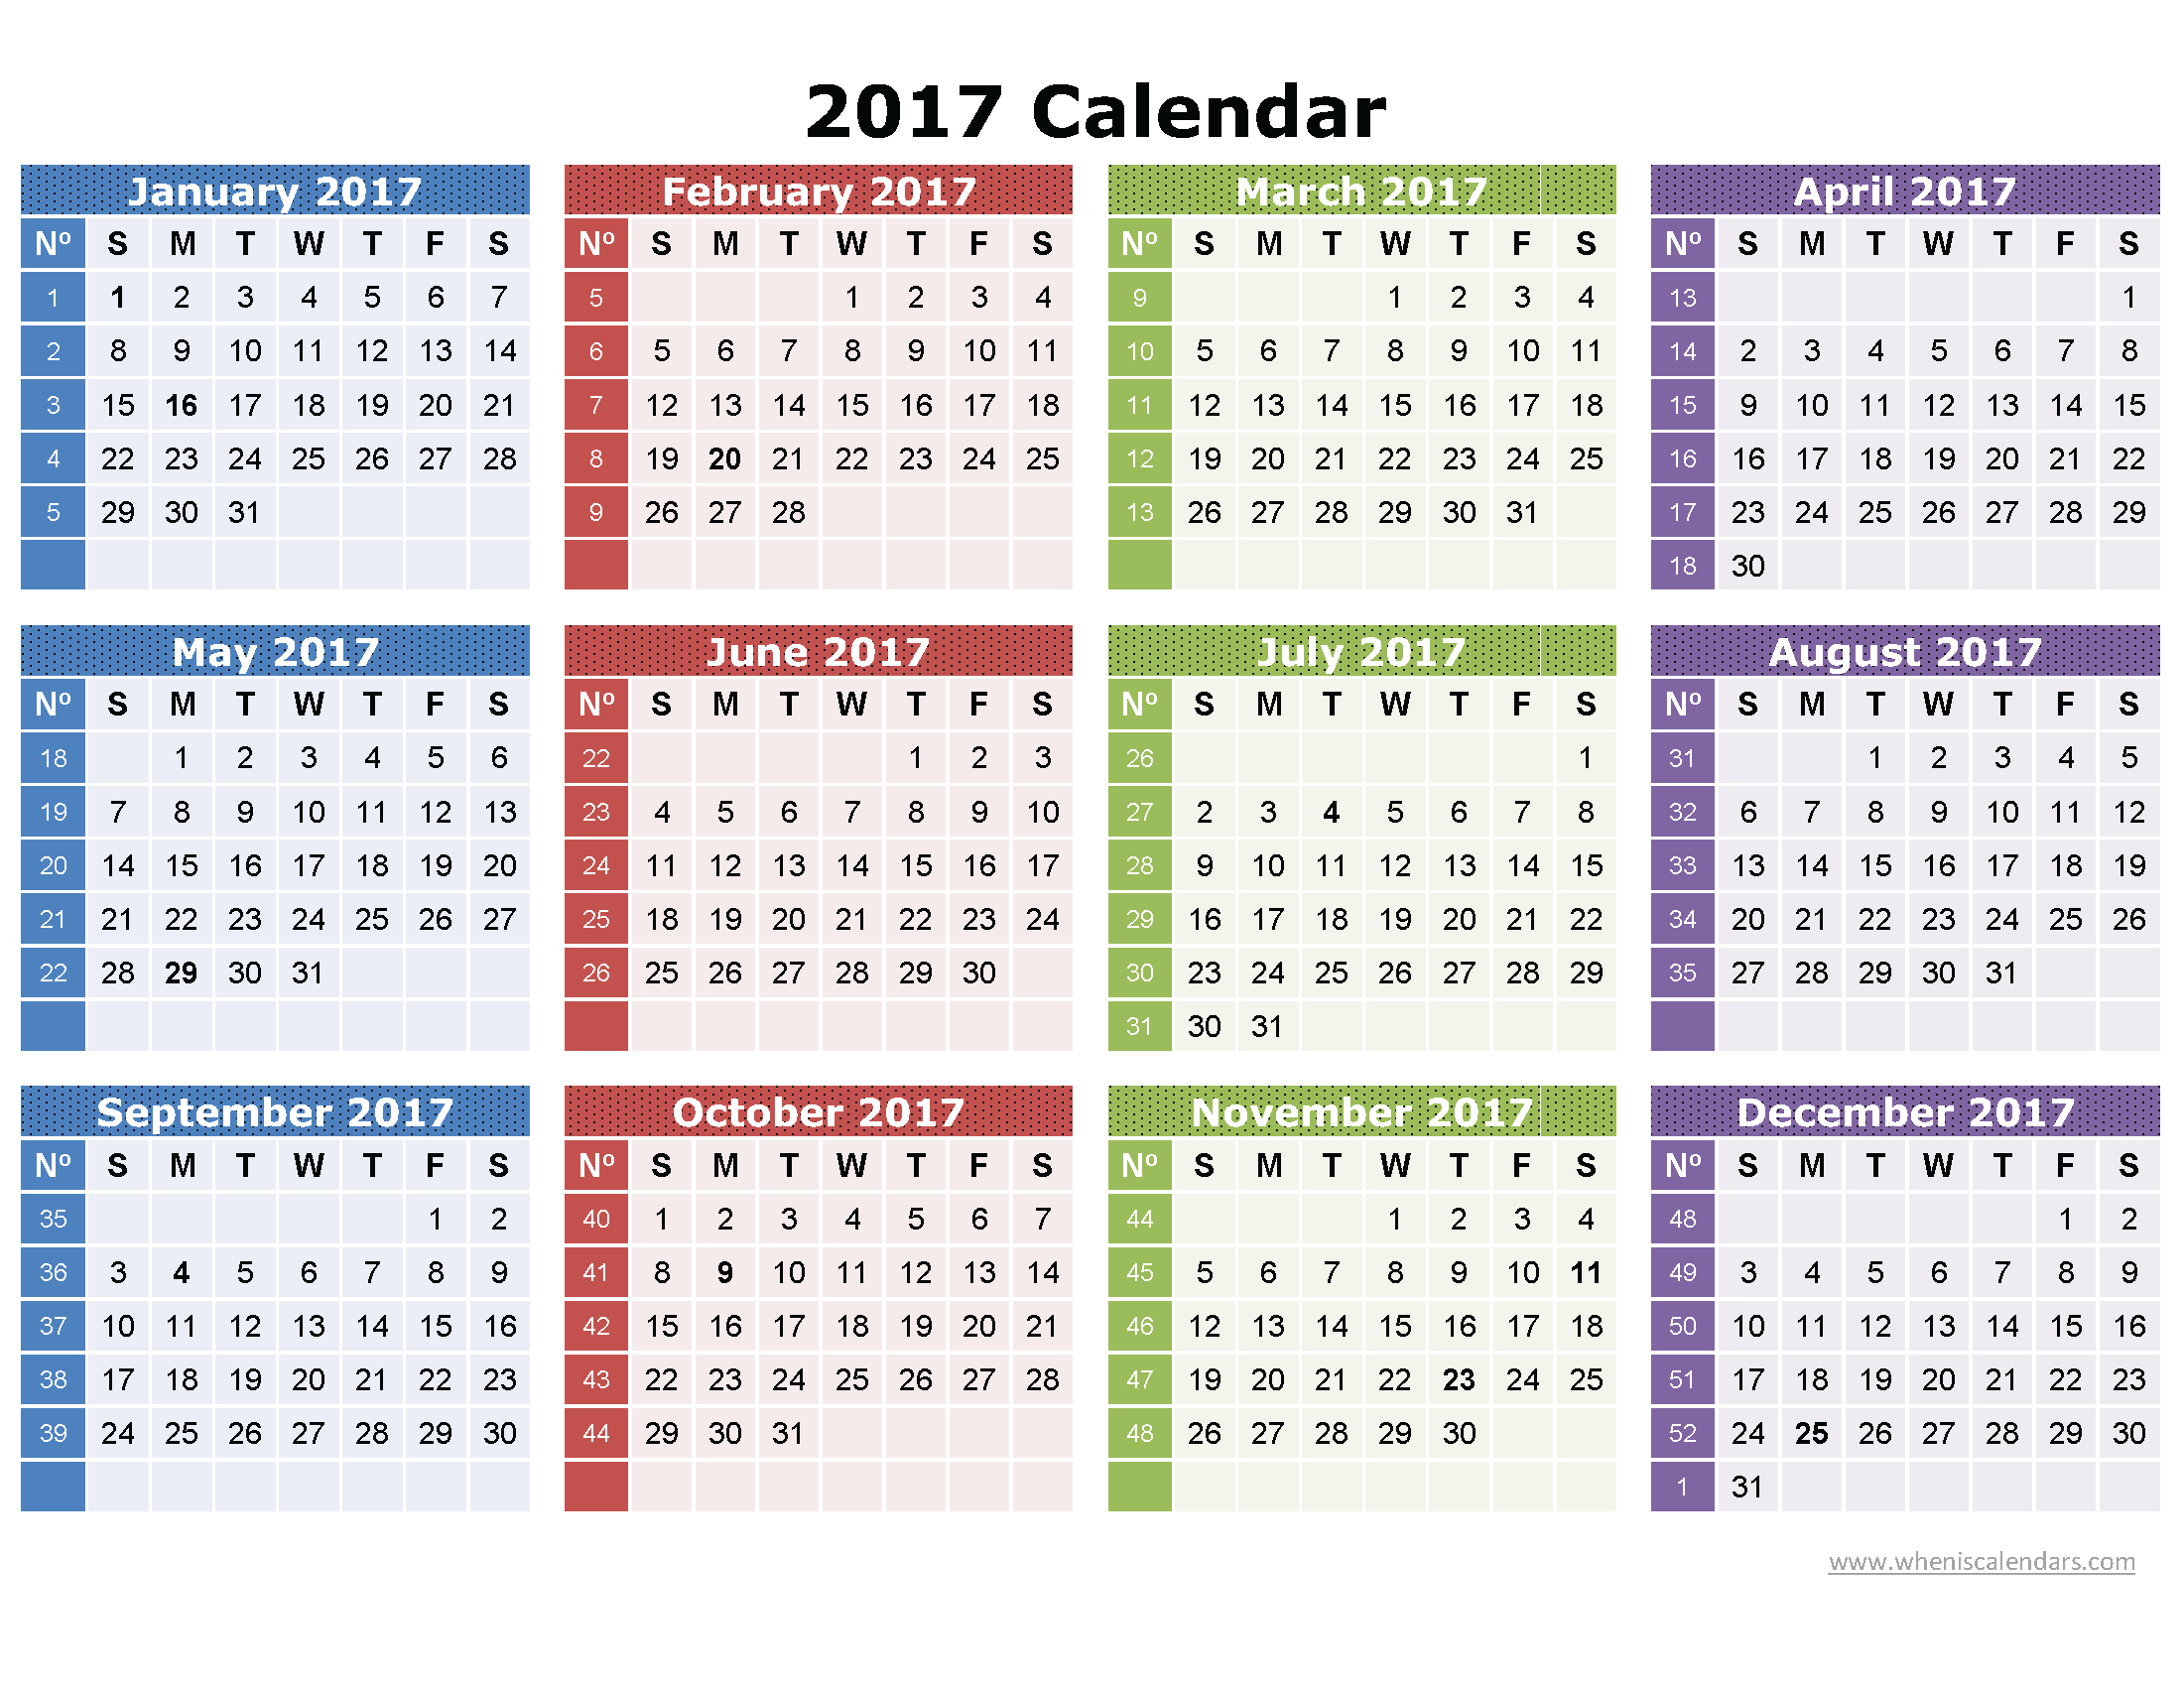 2017 Calendar Printable One Page Image Full Size Pdf A4 Word 2007 And Later